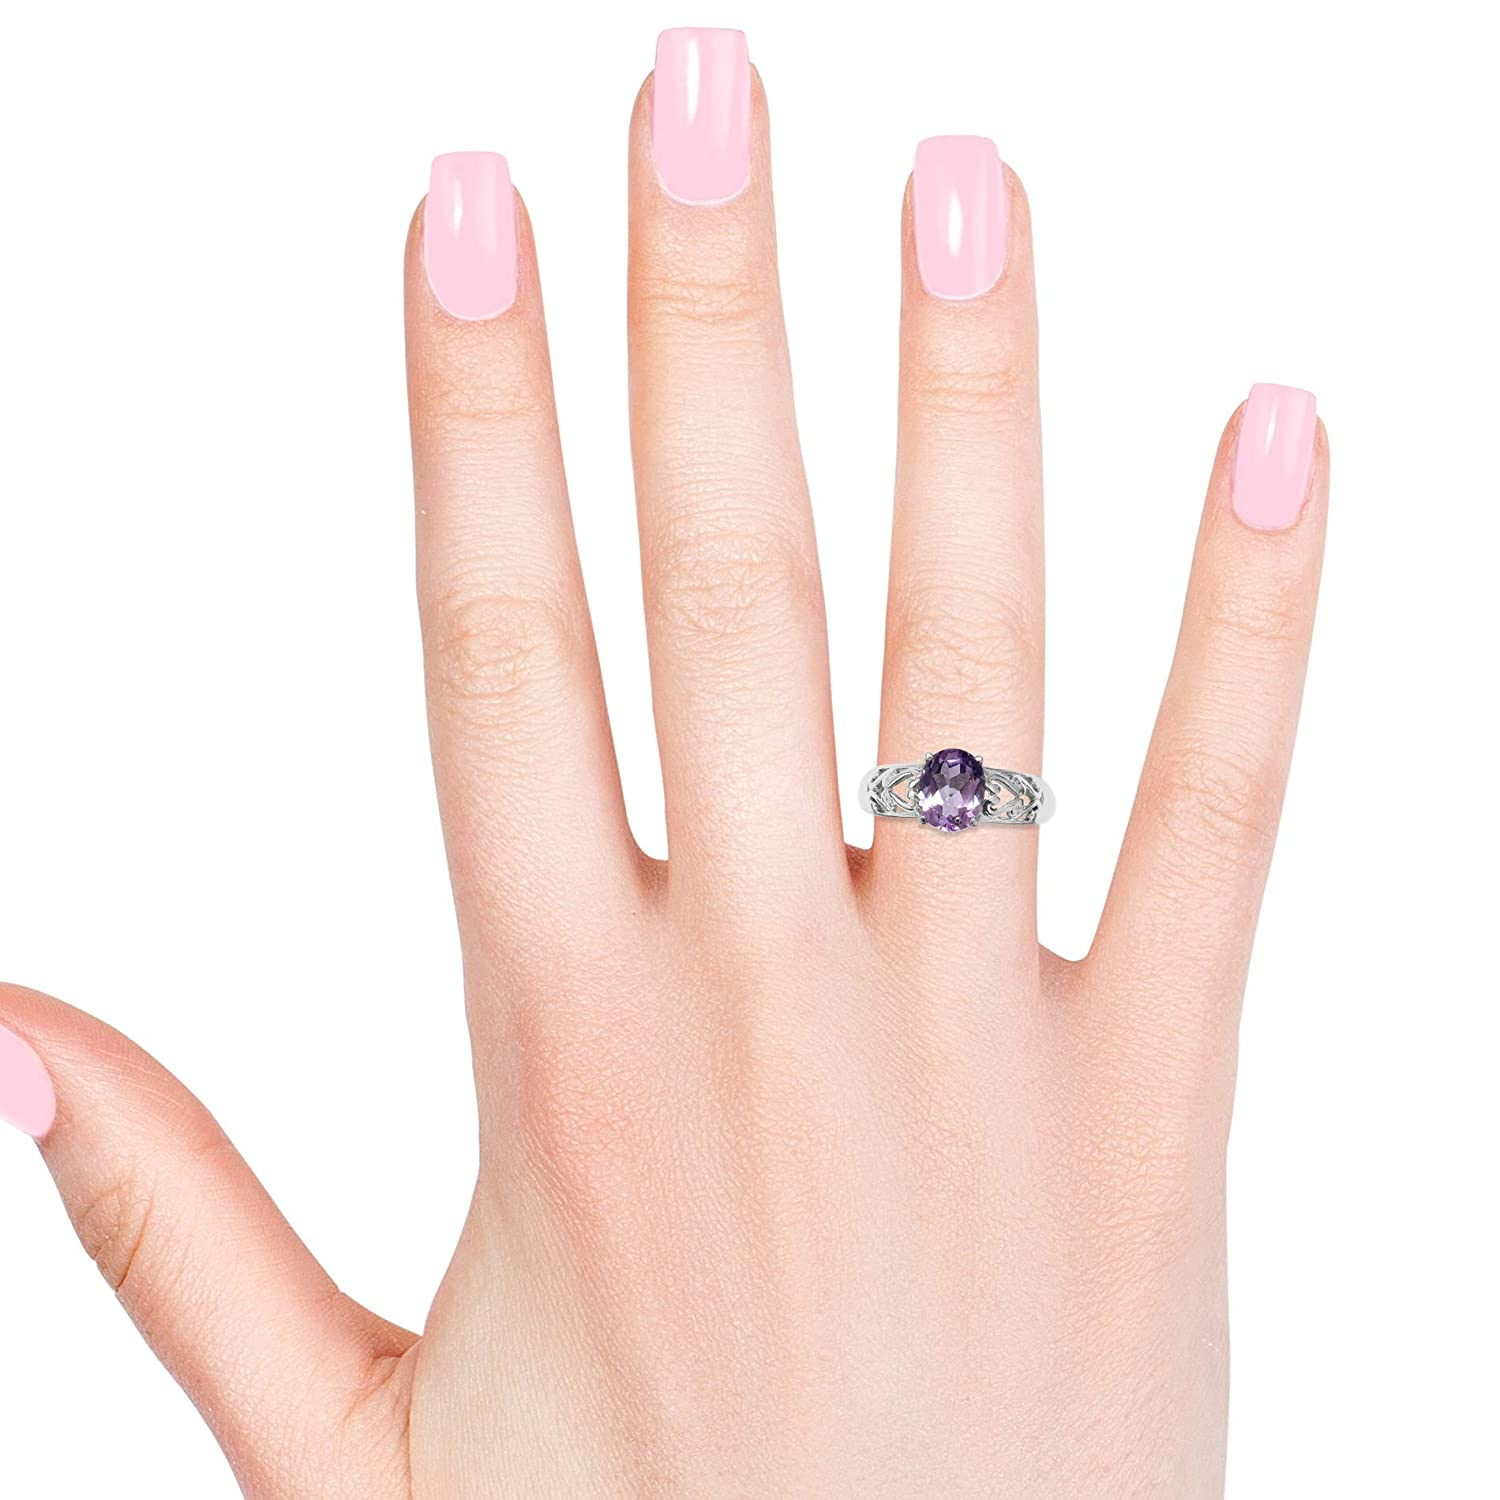 Shop LC Delivering Joy Solitaire Ring Stainless Steel Oval Pink Amethyst Gift Jewelry for Women Size 10 Cttw 2